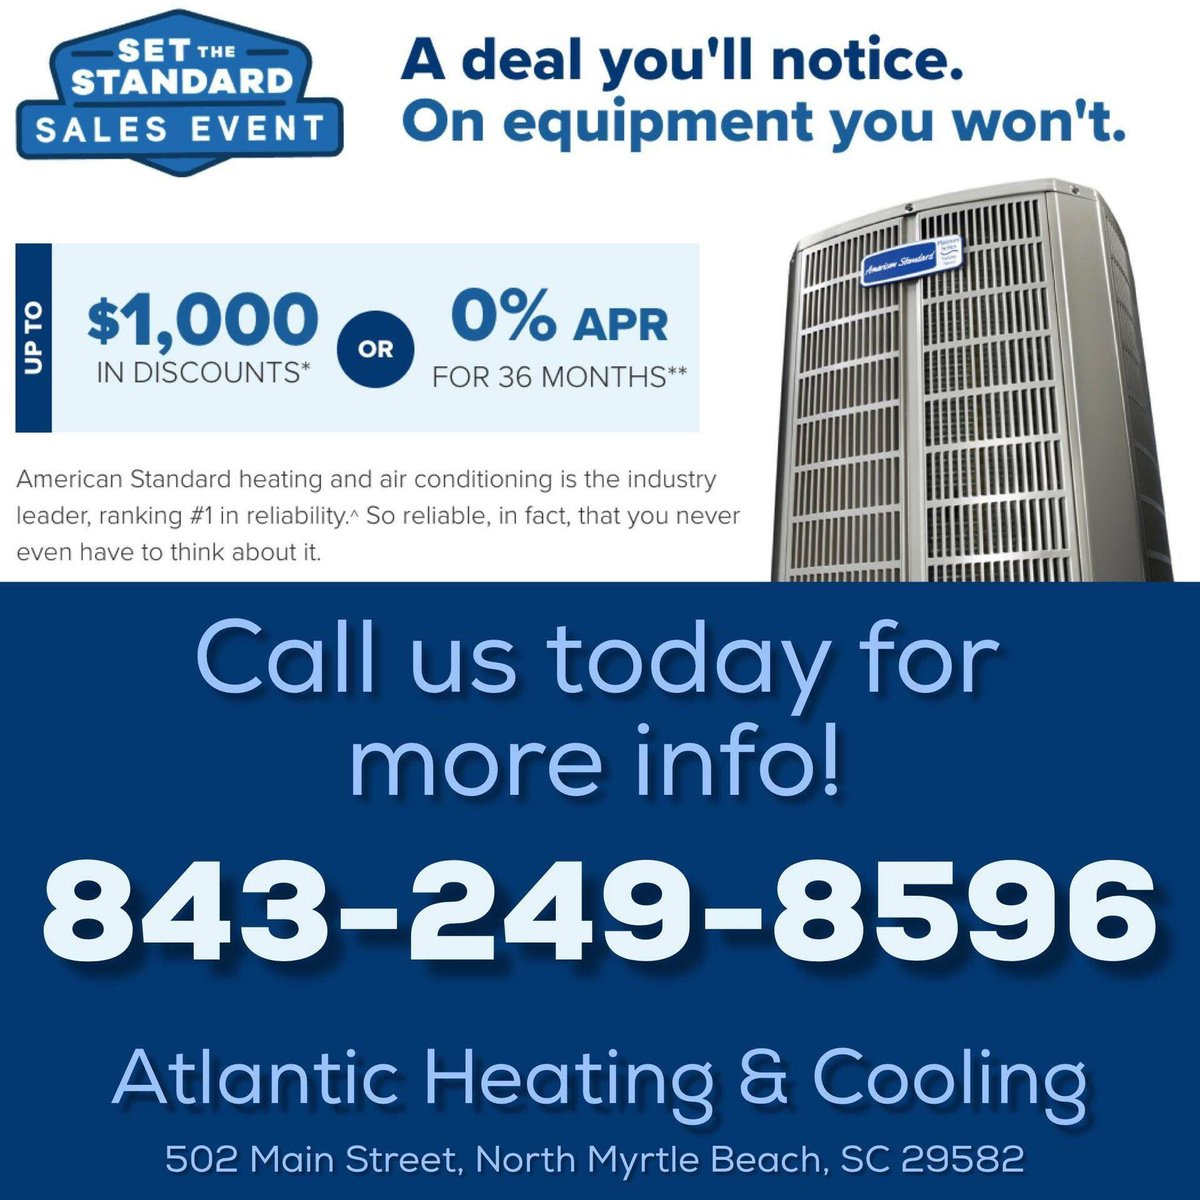 hight resolution of call us today and find out how you can save during the as hvac american standard heating air conditioning s set the standard sales event before it